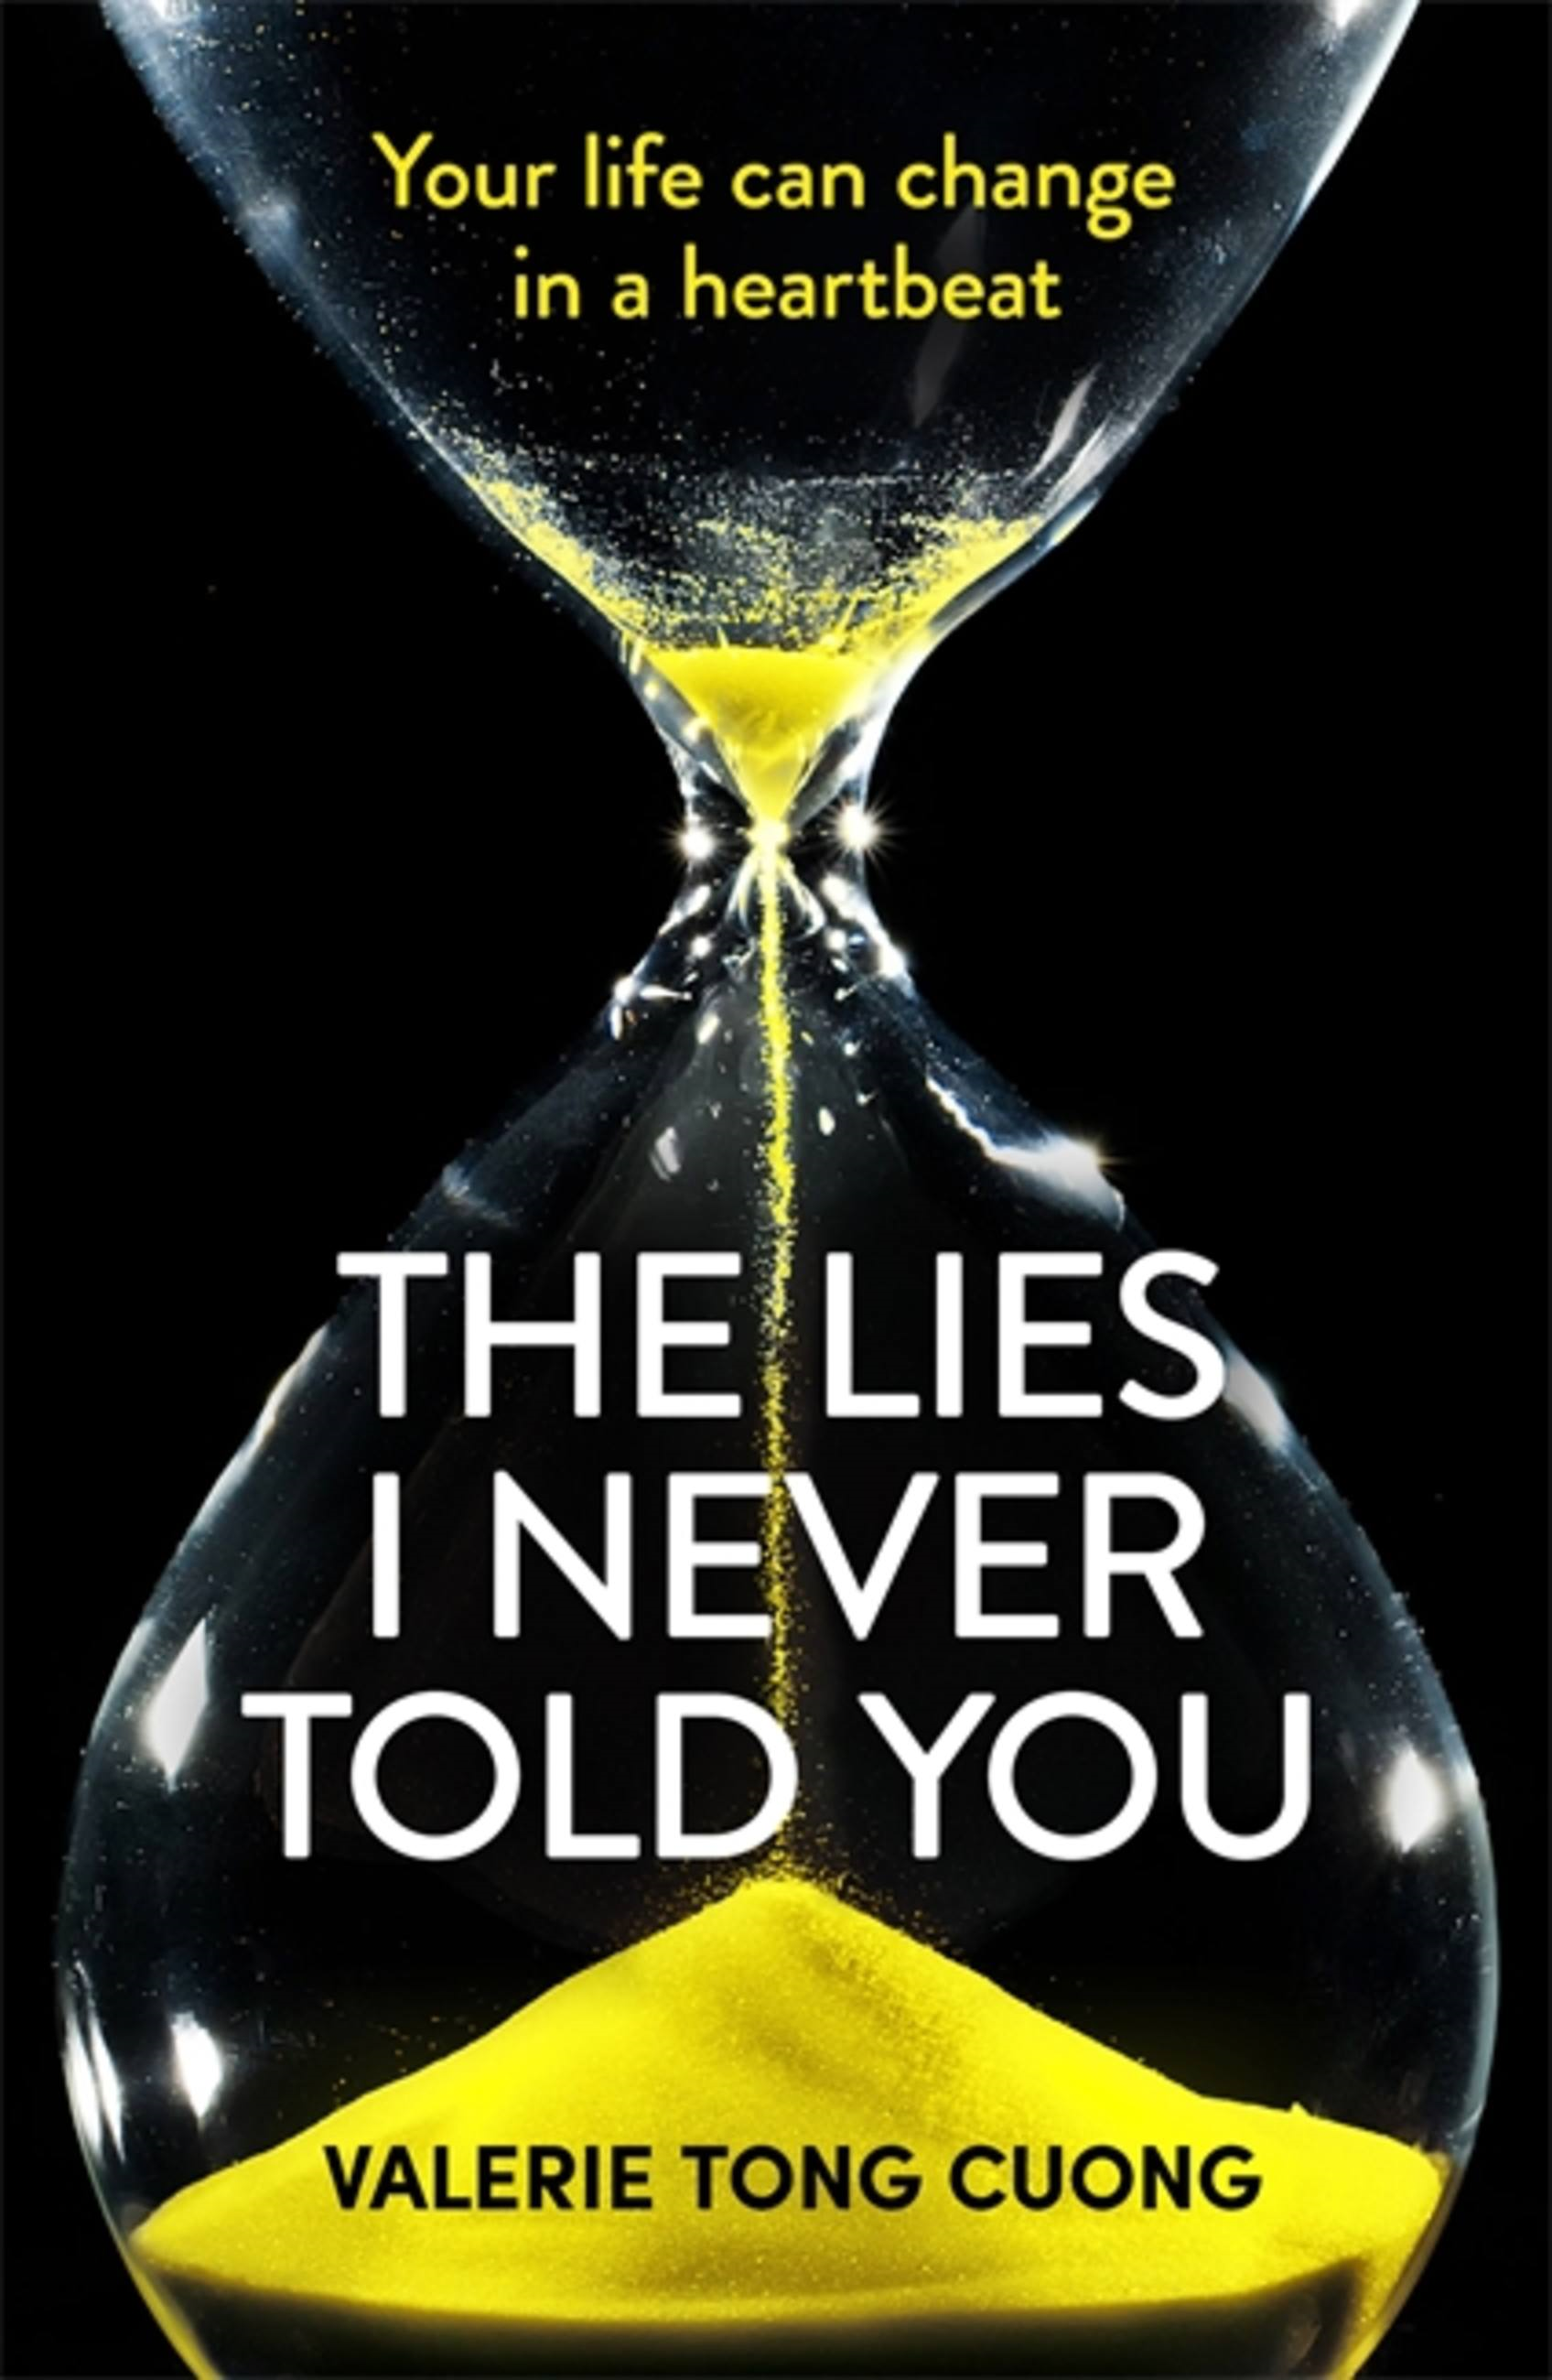 The Lies I Never Told You